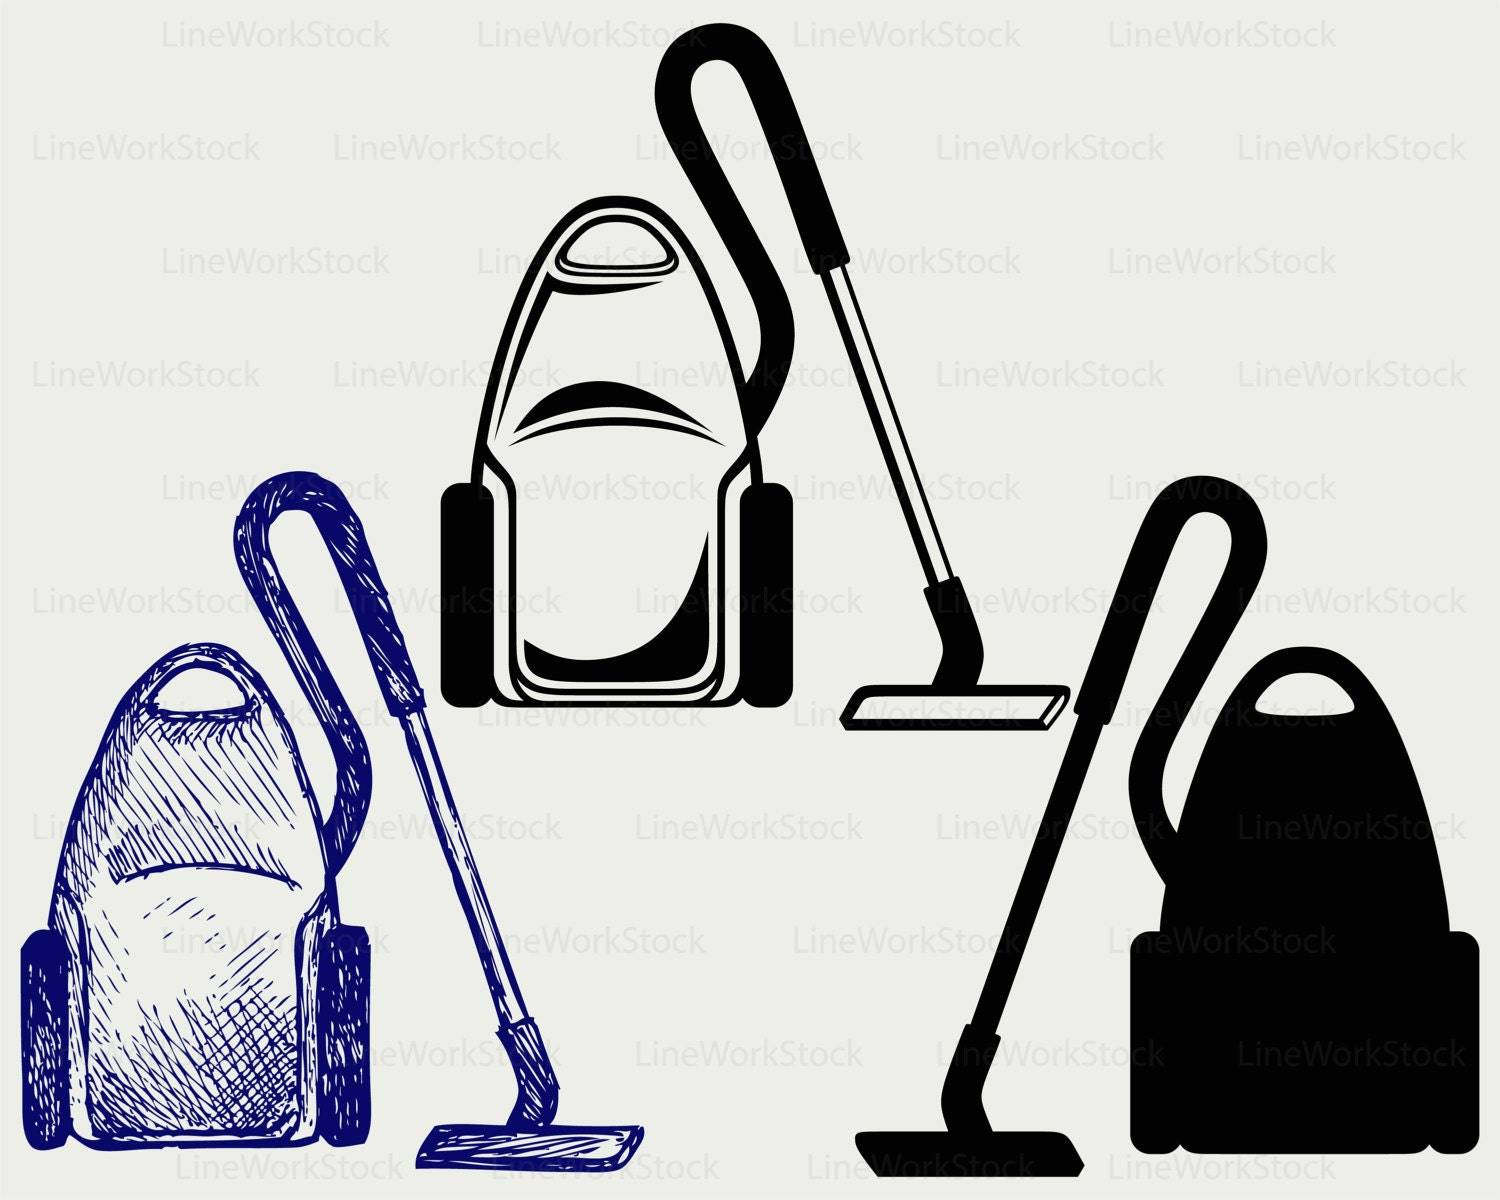 Vacuum cleaner clipart vacuum cleaner clip art - This Is A Digital File